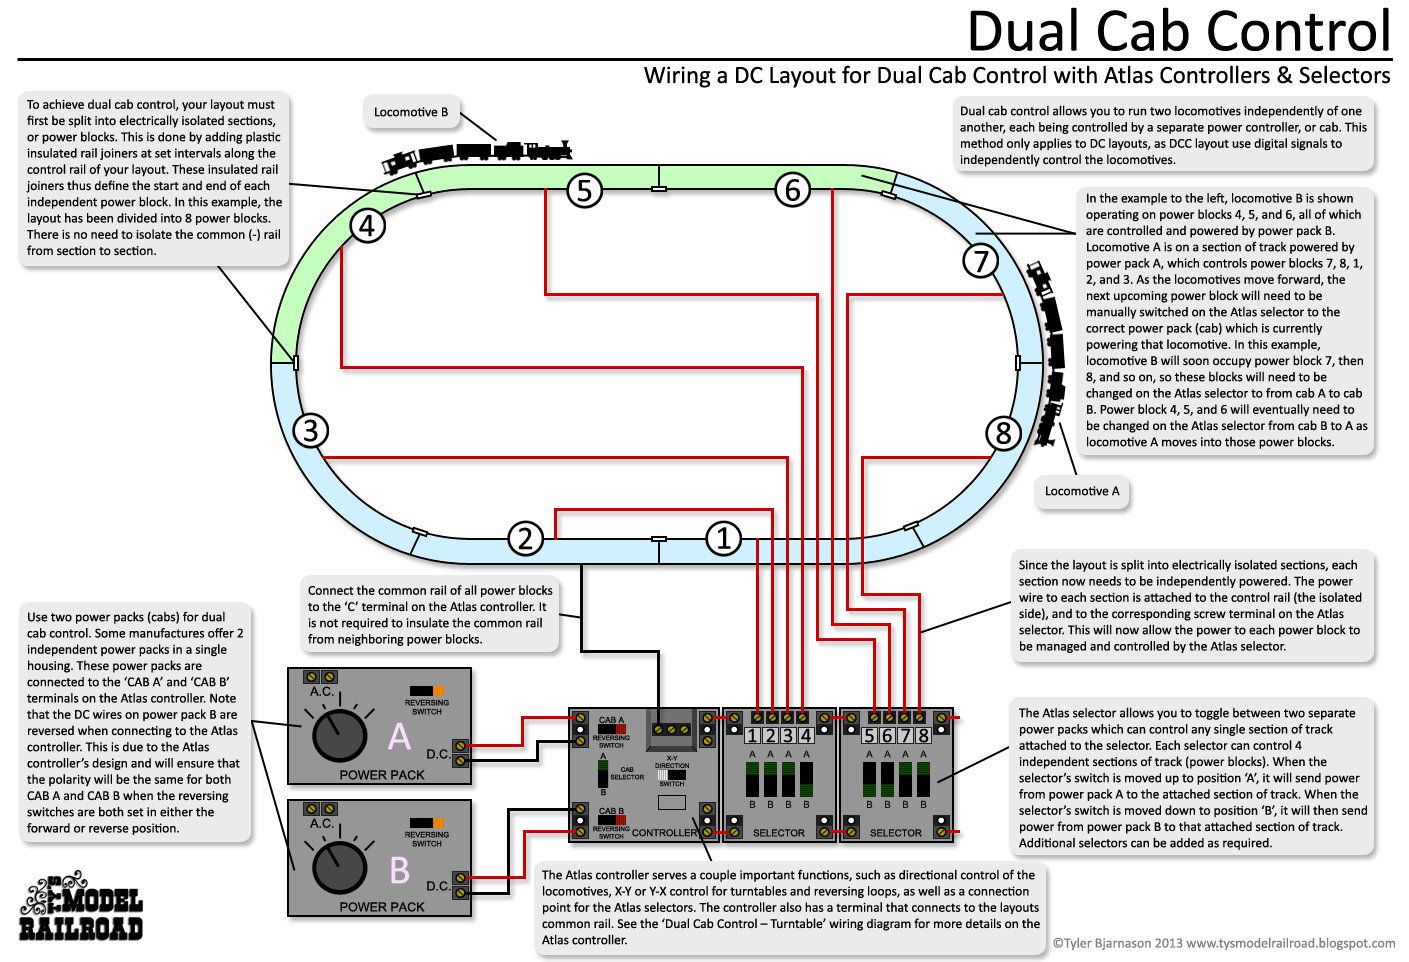 ty s model railroad wiring diagrams rh tysmodelrailroad blogspot com model railway track wiring diagrams model railway wiring diagrams